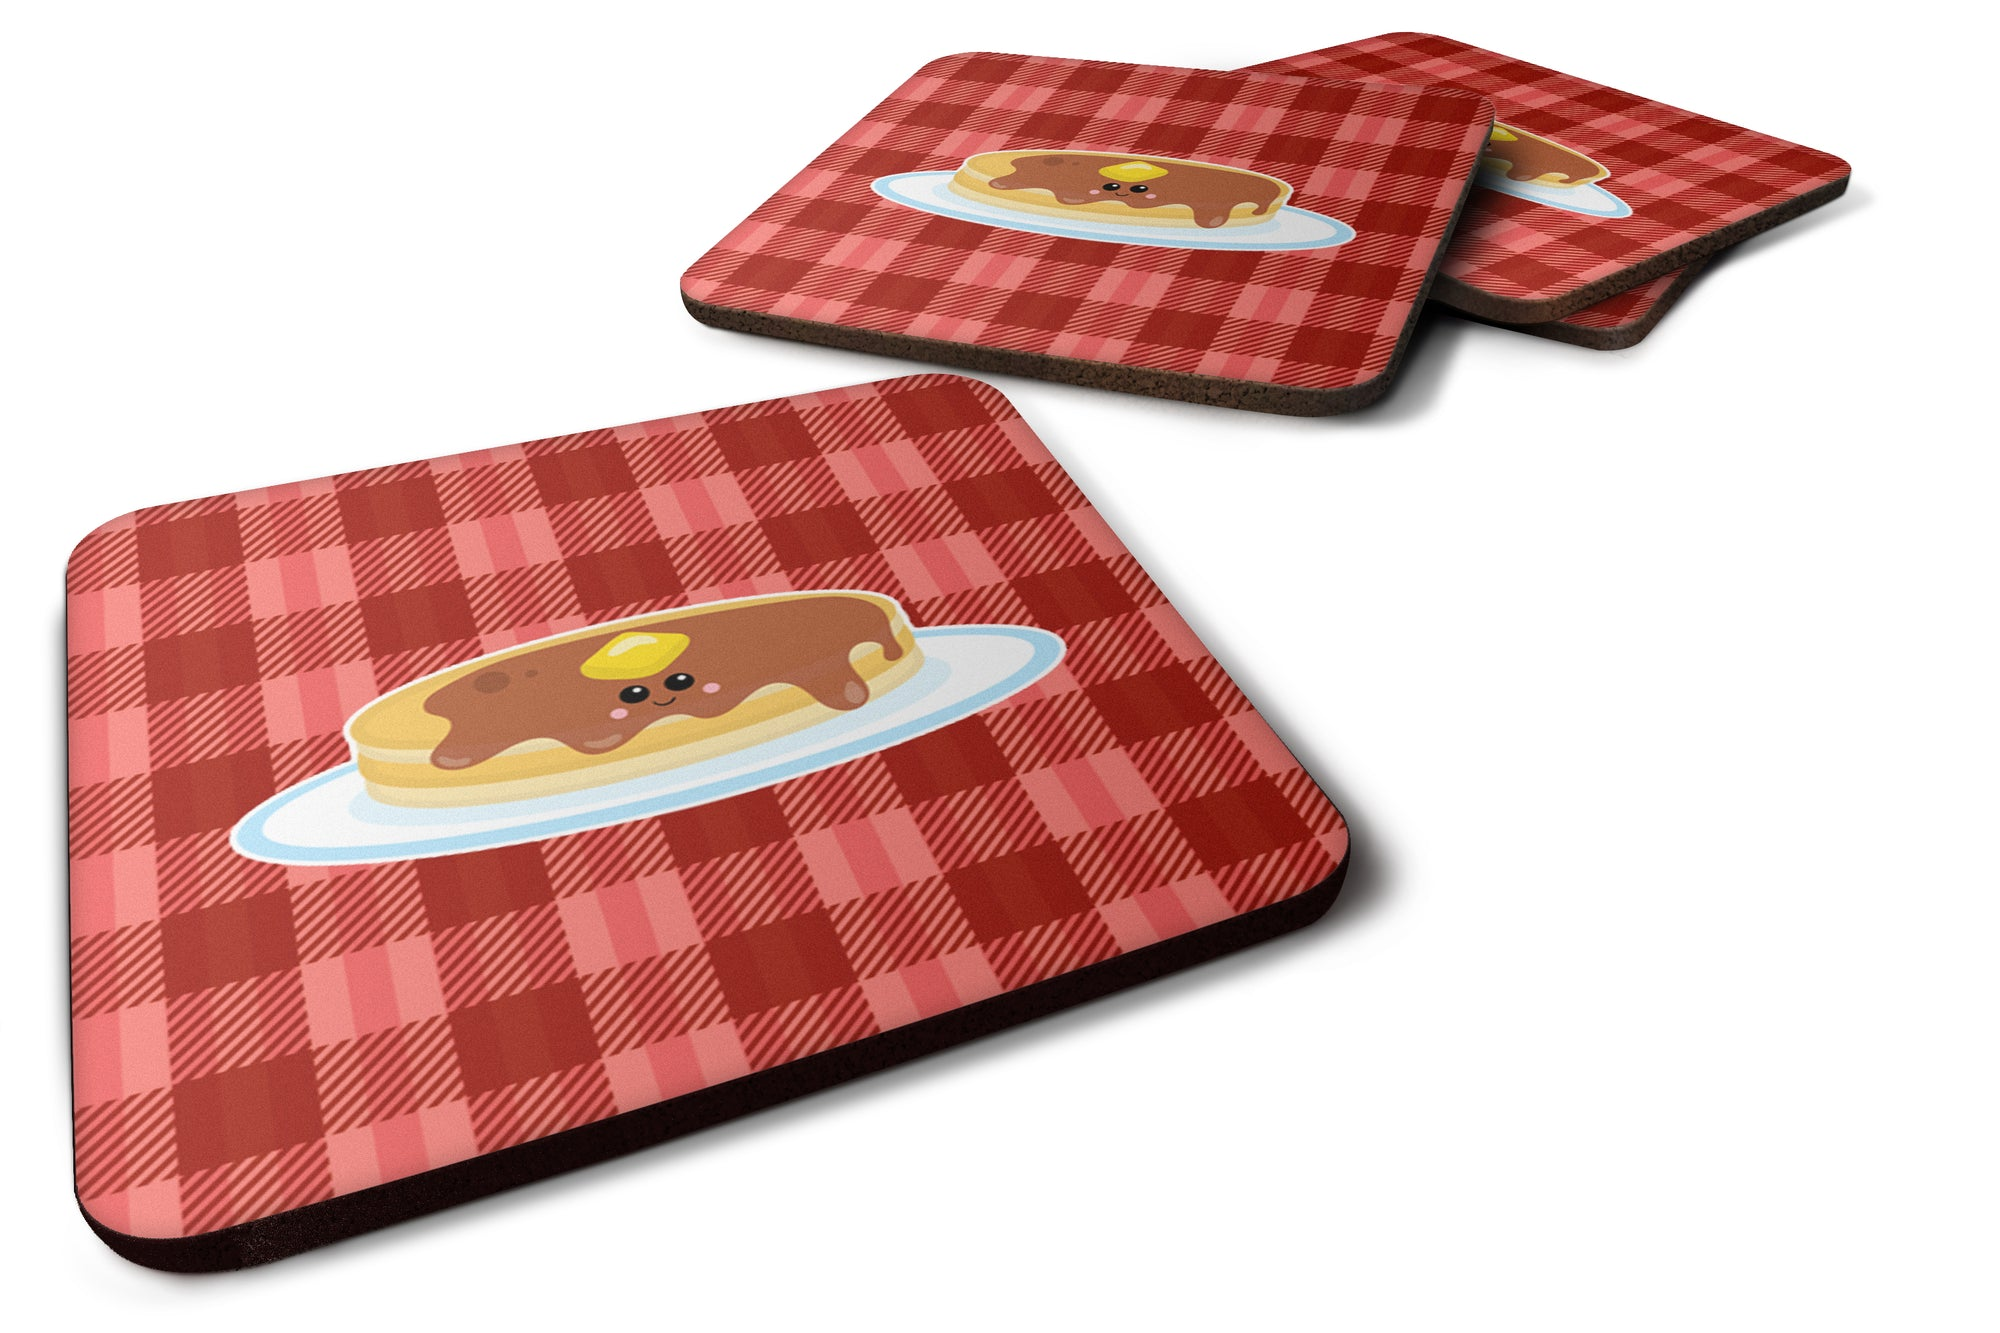 Pancake Face Foam Coaster Set of 4 BB7049FC by Caroline's Treasures